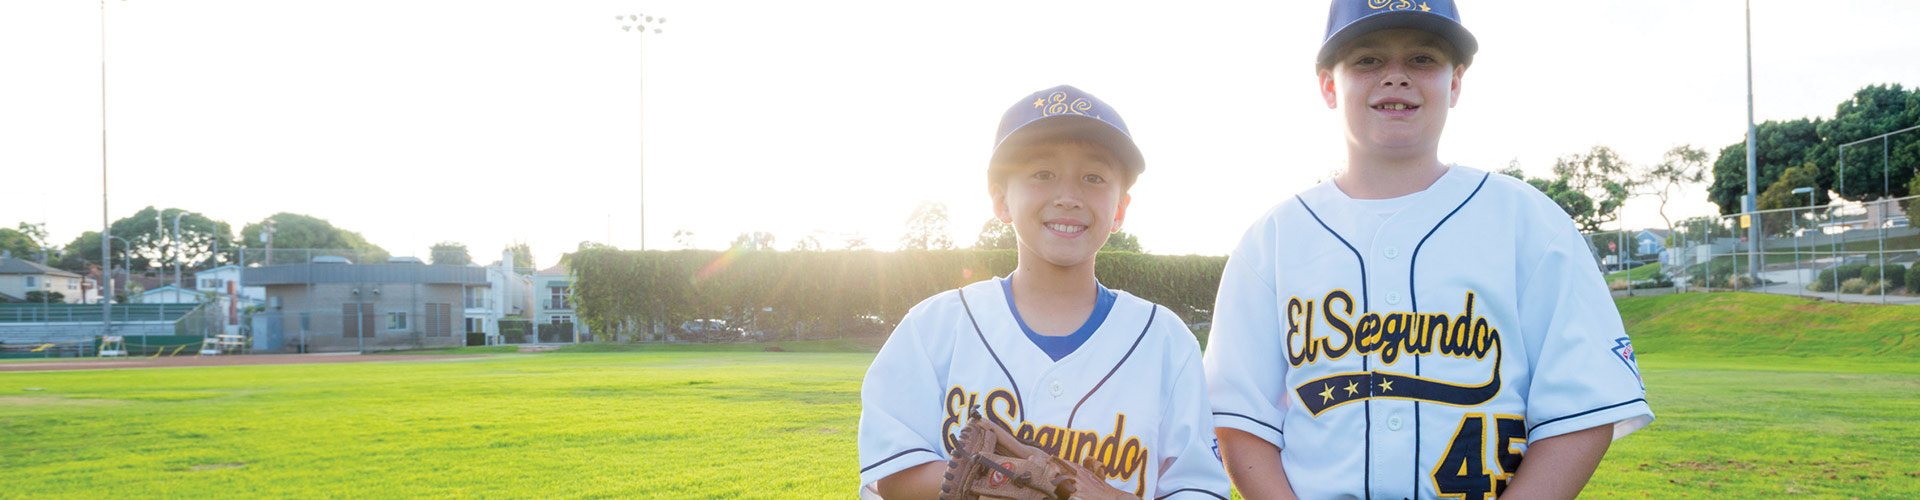 Youth Sports in El Segundo, CA